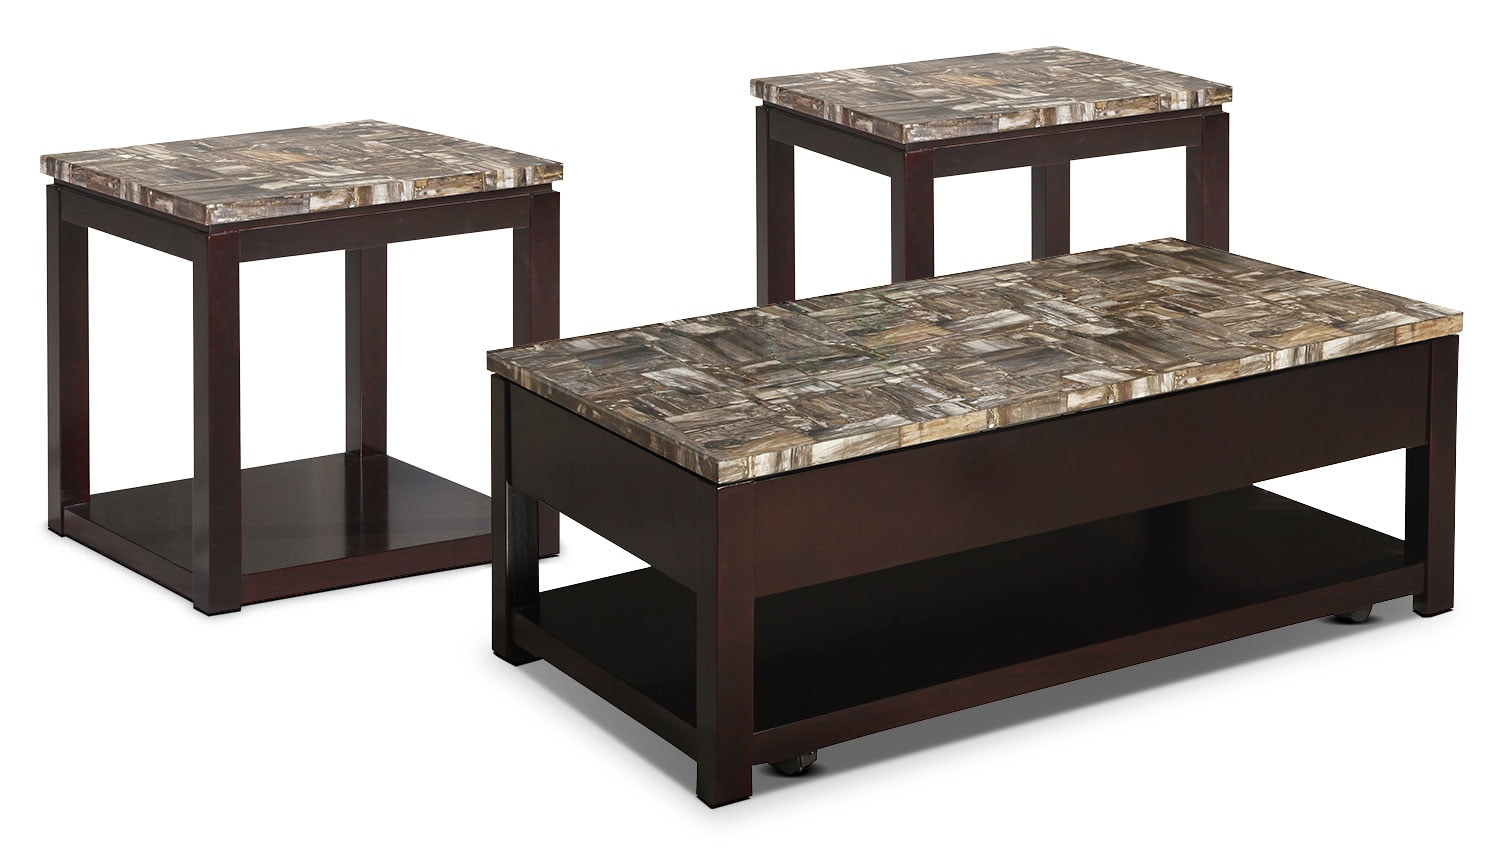 Sicily 3-Piece Coffee and Two End Tables Package – Deep Chocolate